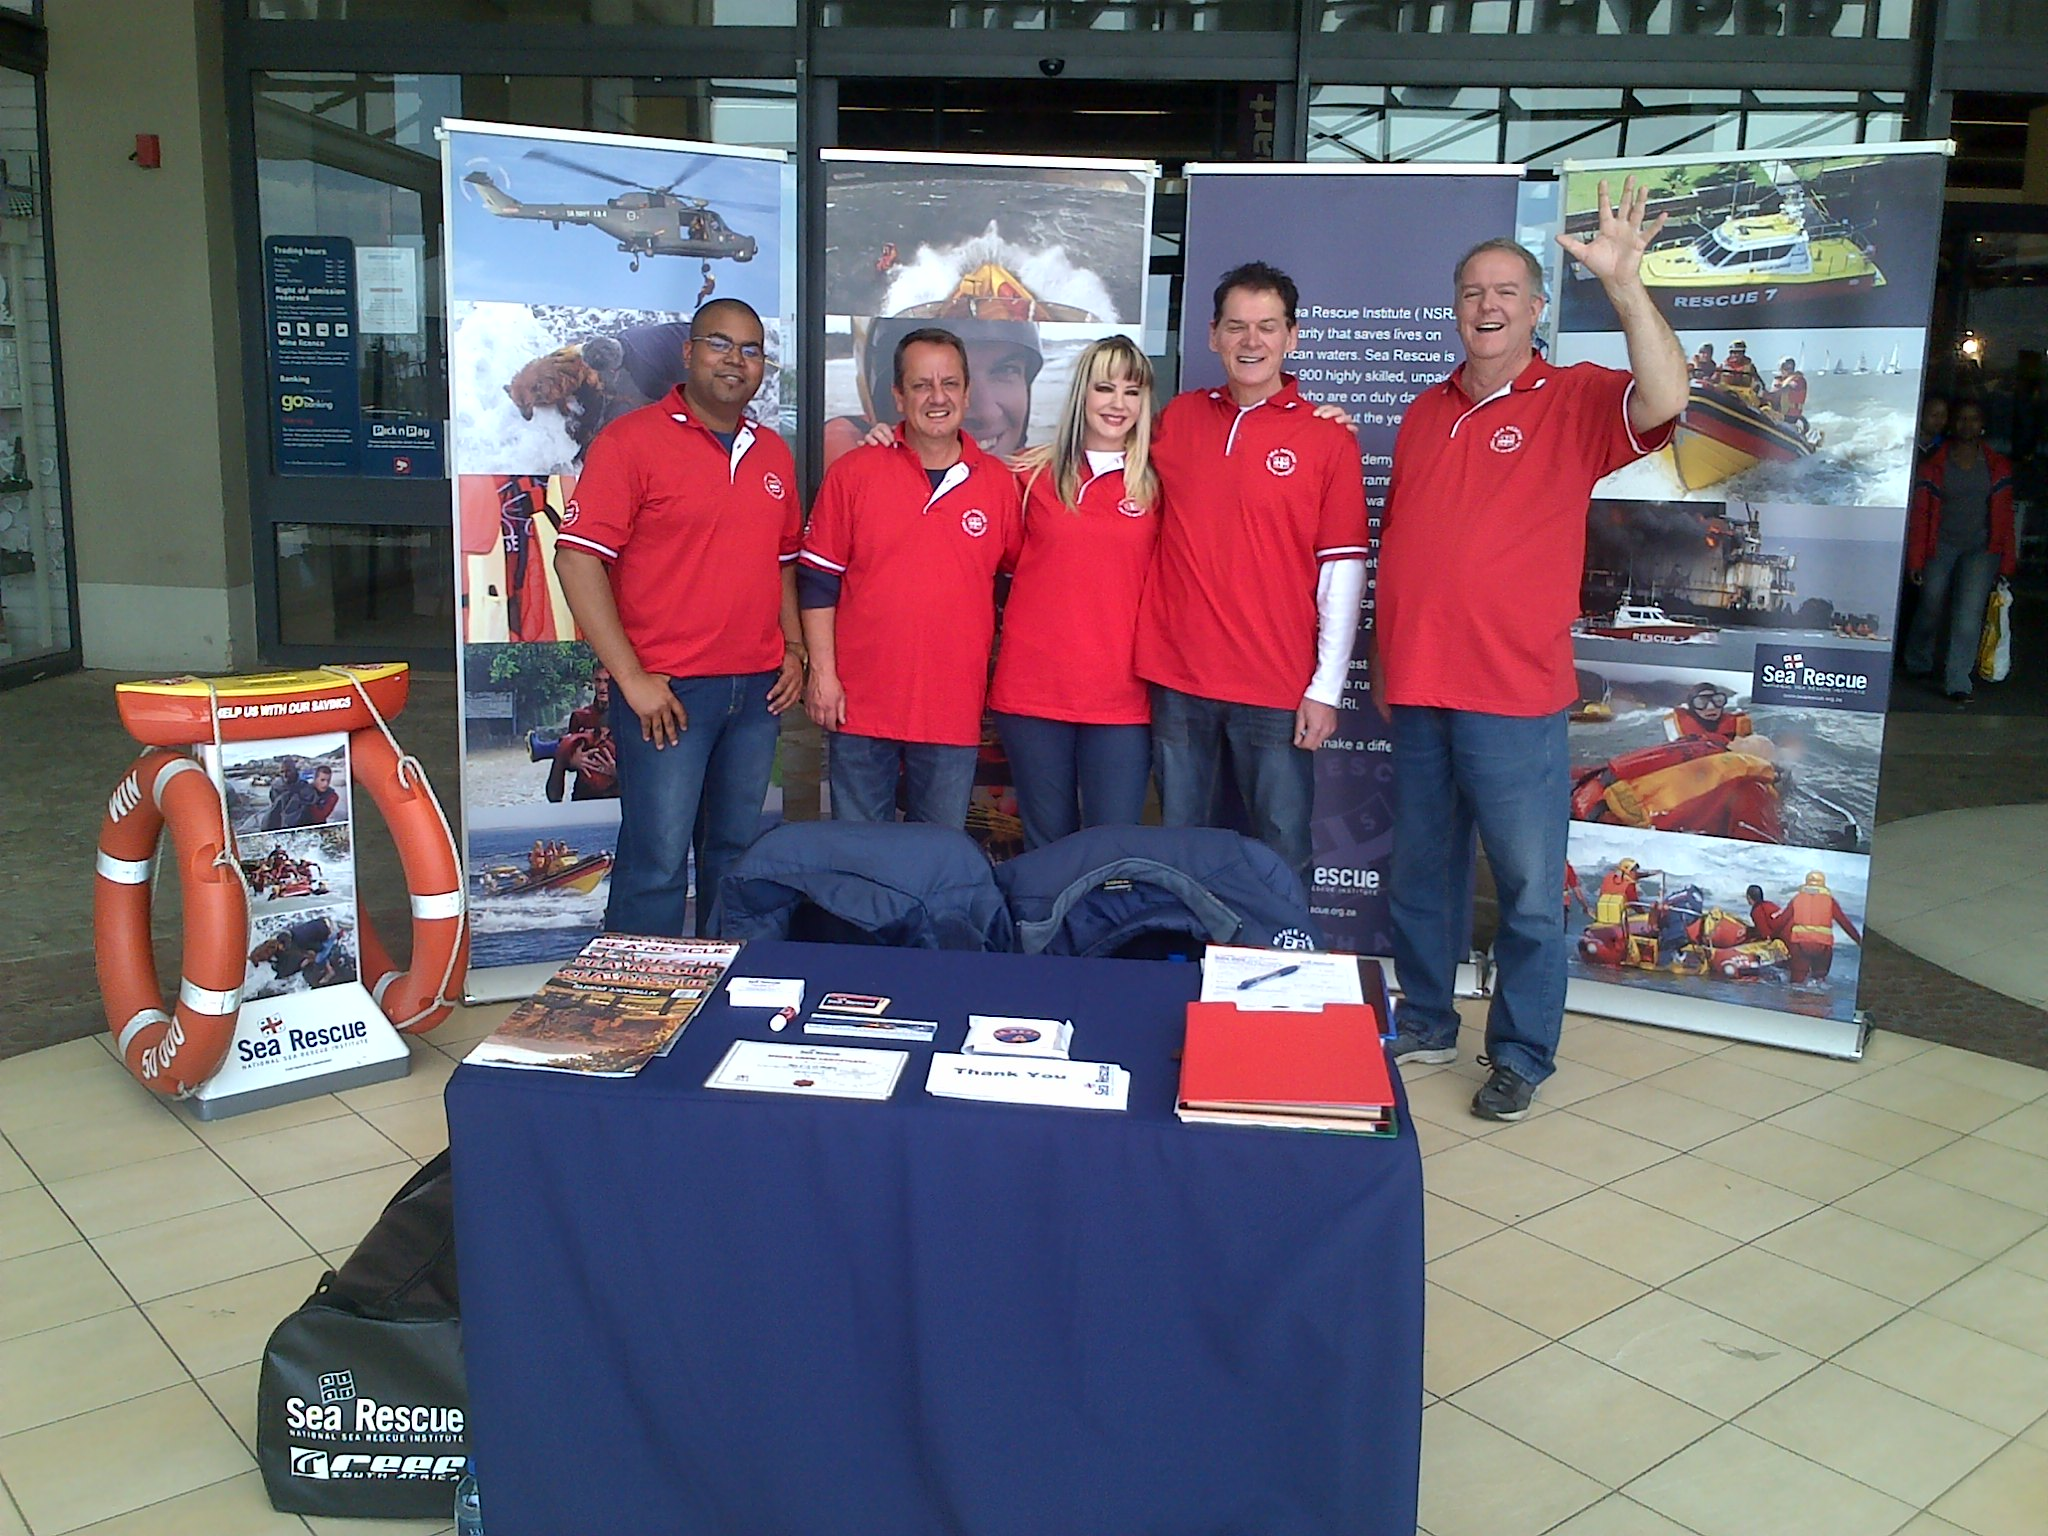 Our Face 2 Face team will be at the Jhb boat show.